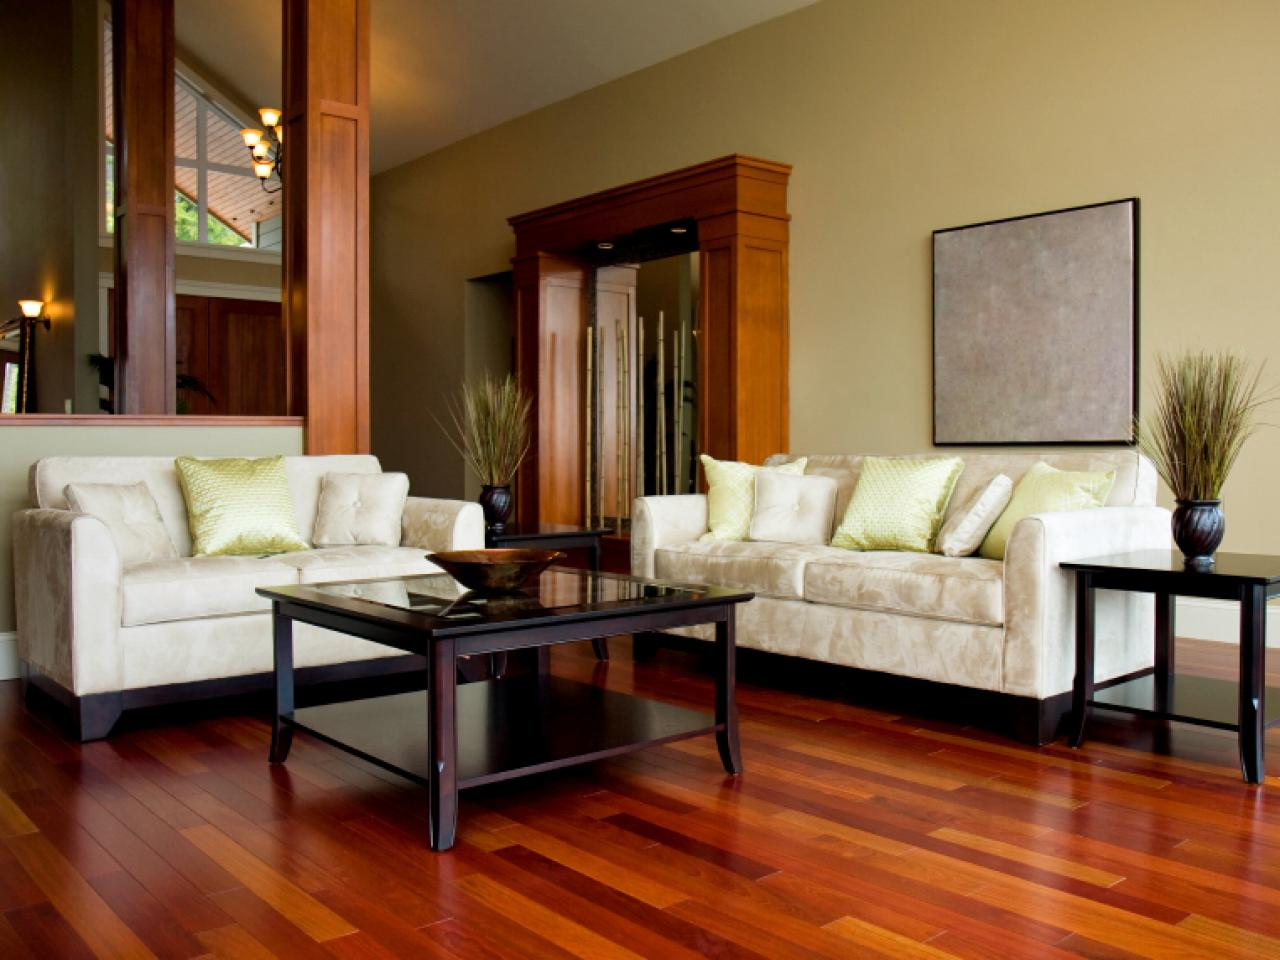 Guide to selecting flooring diy for Living room with wood floors